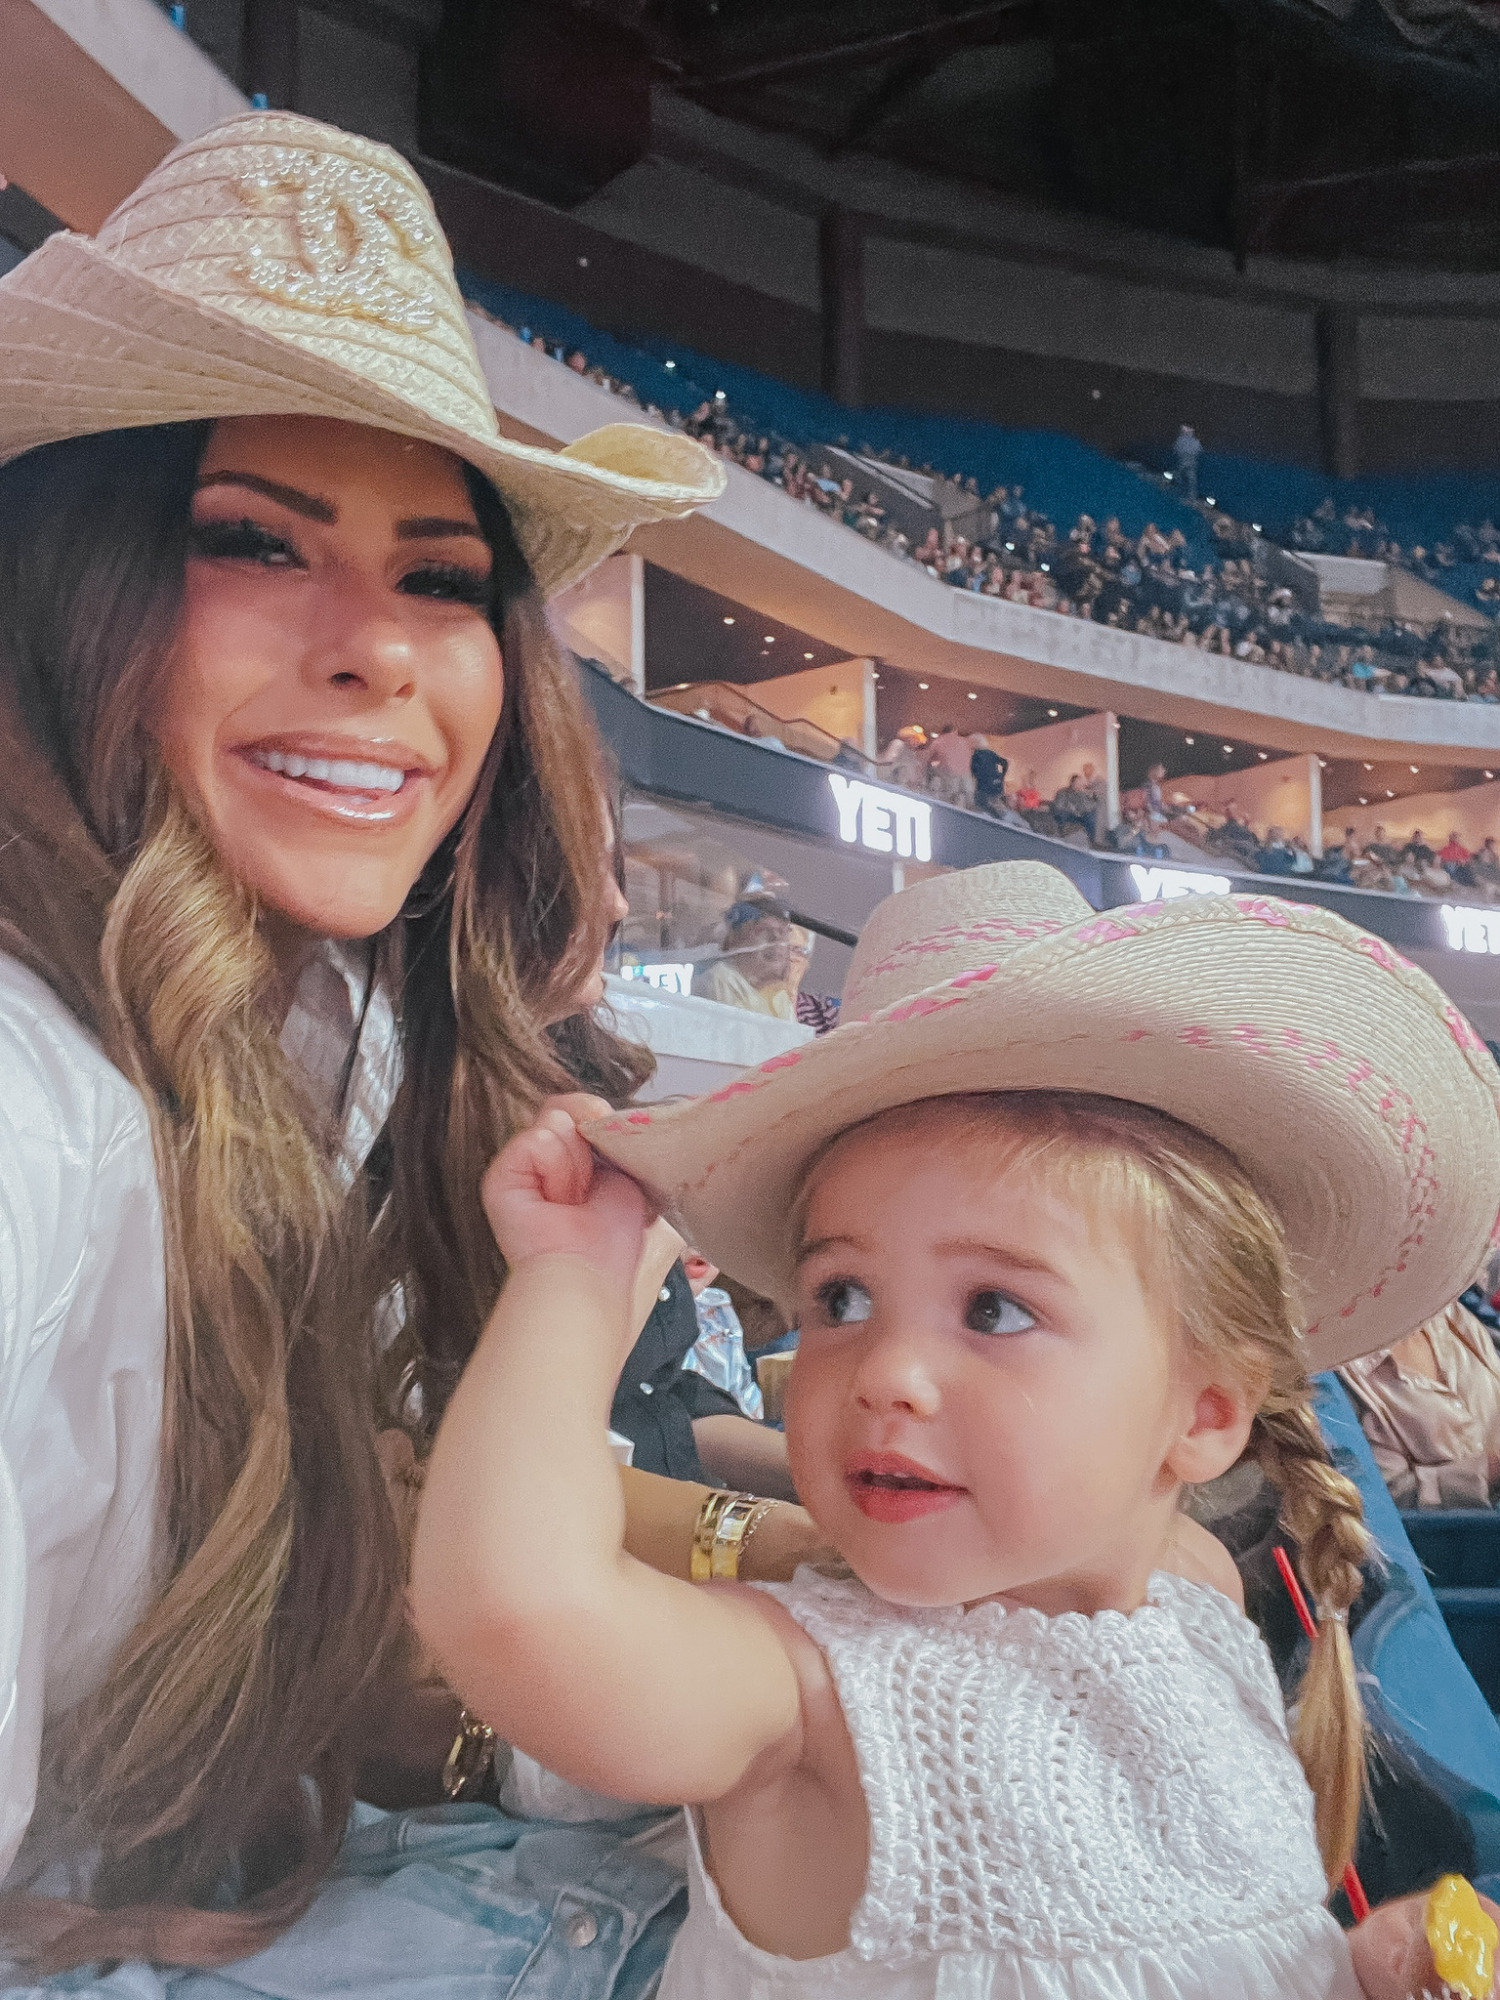 Emily Ann Gemma, Sophia Gemma, Cowgirl Boots, What To Wear To The Rodeo, Western Outfit Ideas, Amazon Cowgirl Boots, Fendi Cowboy Boot Dupes, Louis Vuitton Handbag, Cowgirl Hat, Chanel Cowboy Hat   Instagram Recap by popular US life and style blog, The Sweetest Thing: image of Emily Gemma and her daughter wearing white dress and tan straw cowboy hats.